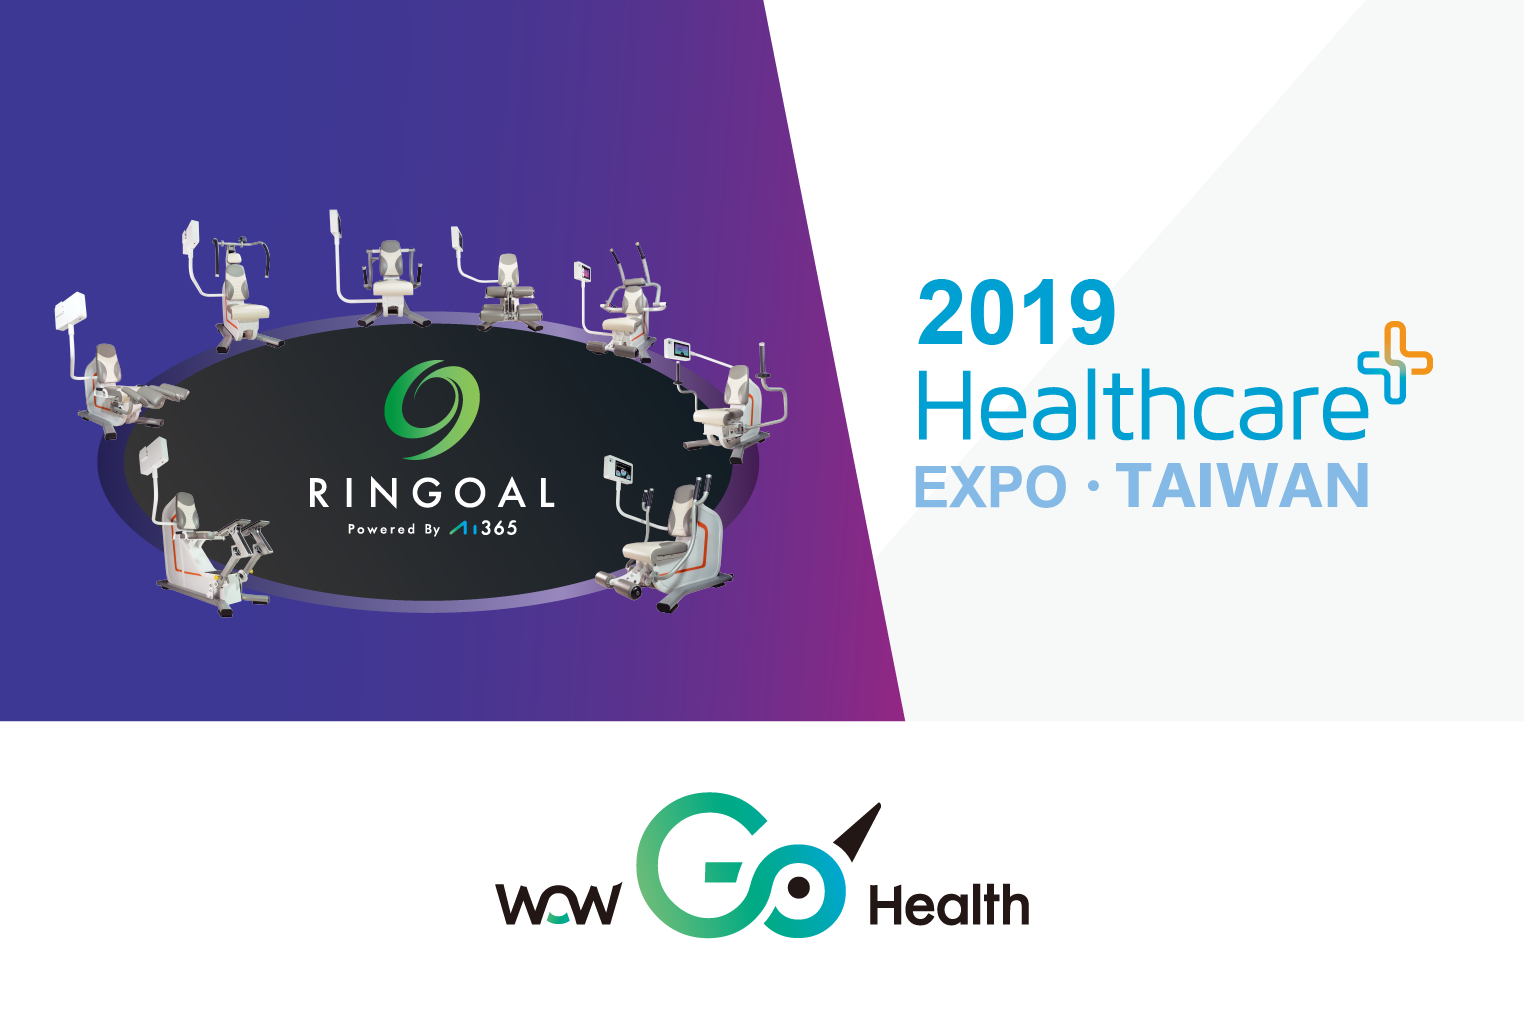 GoldenSmartHome Tecnology Corp. is going to participate in Taiwan Healthcare EXPO!